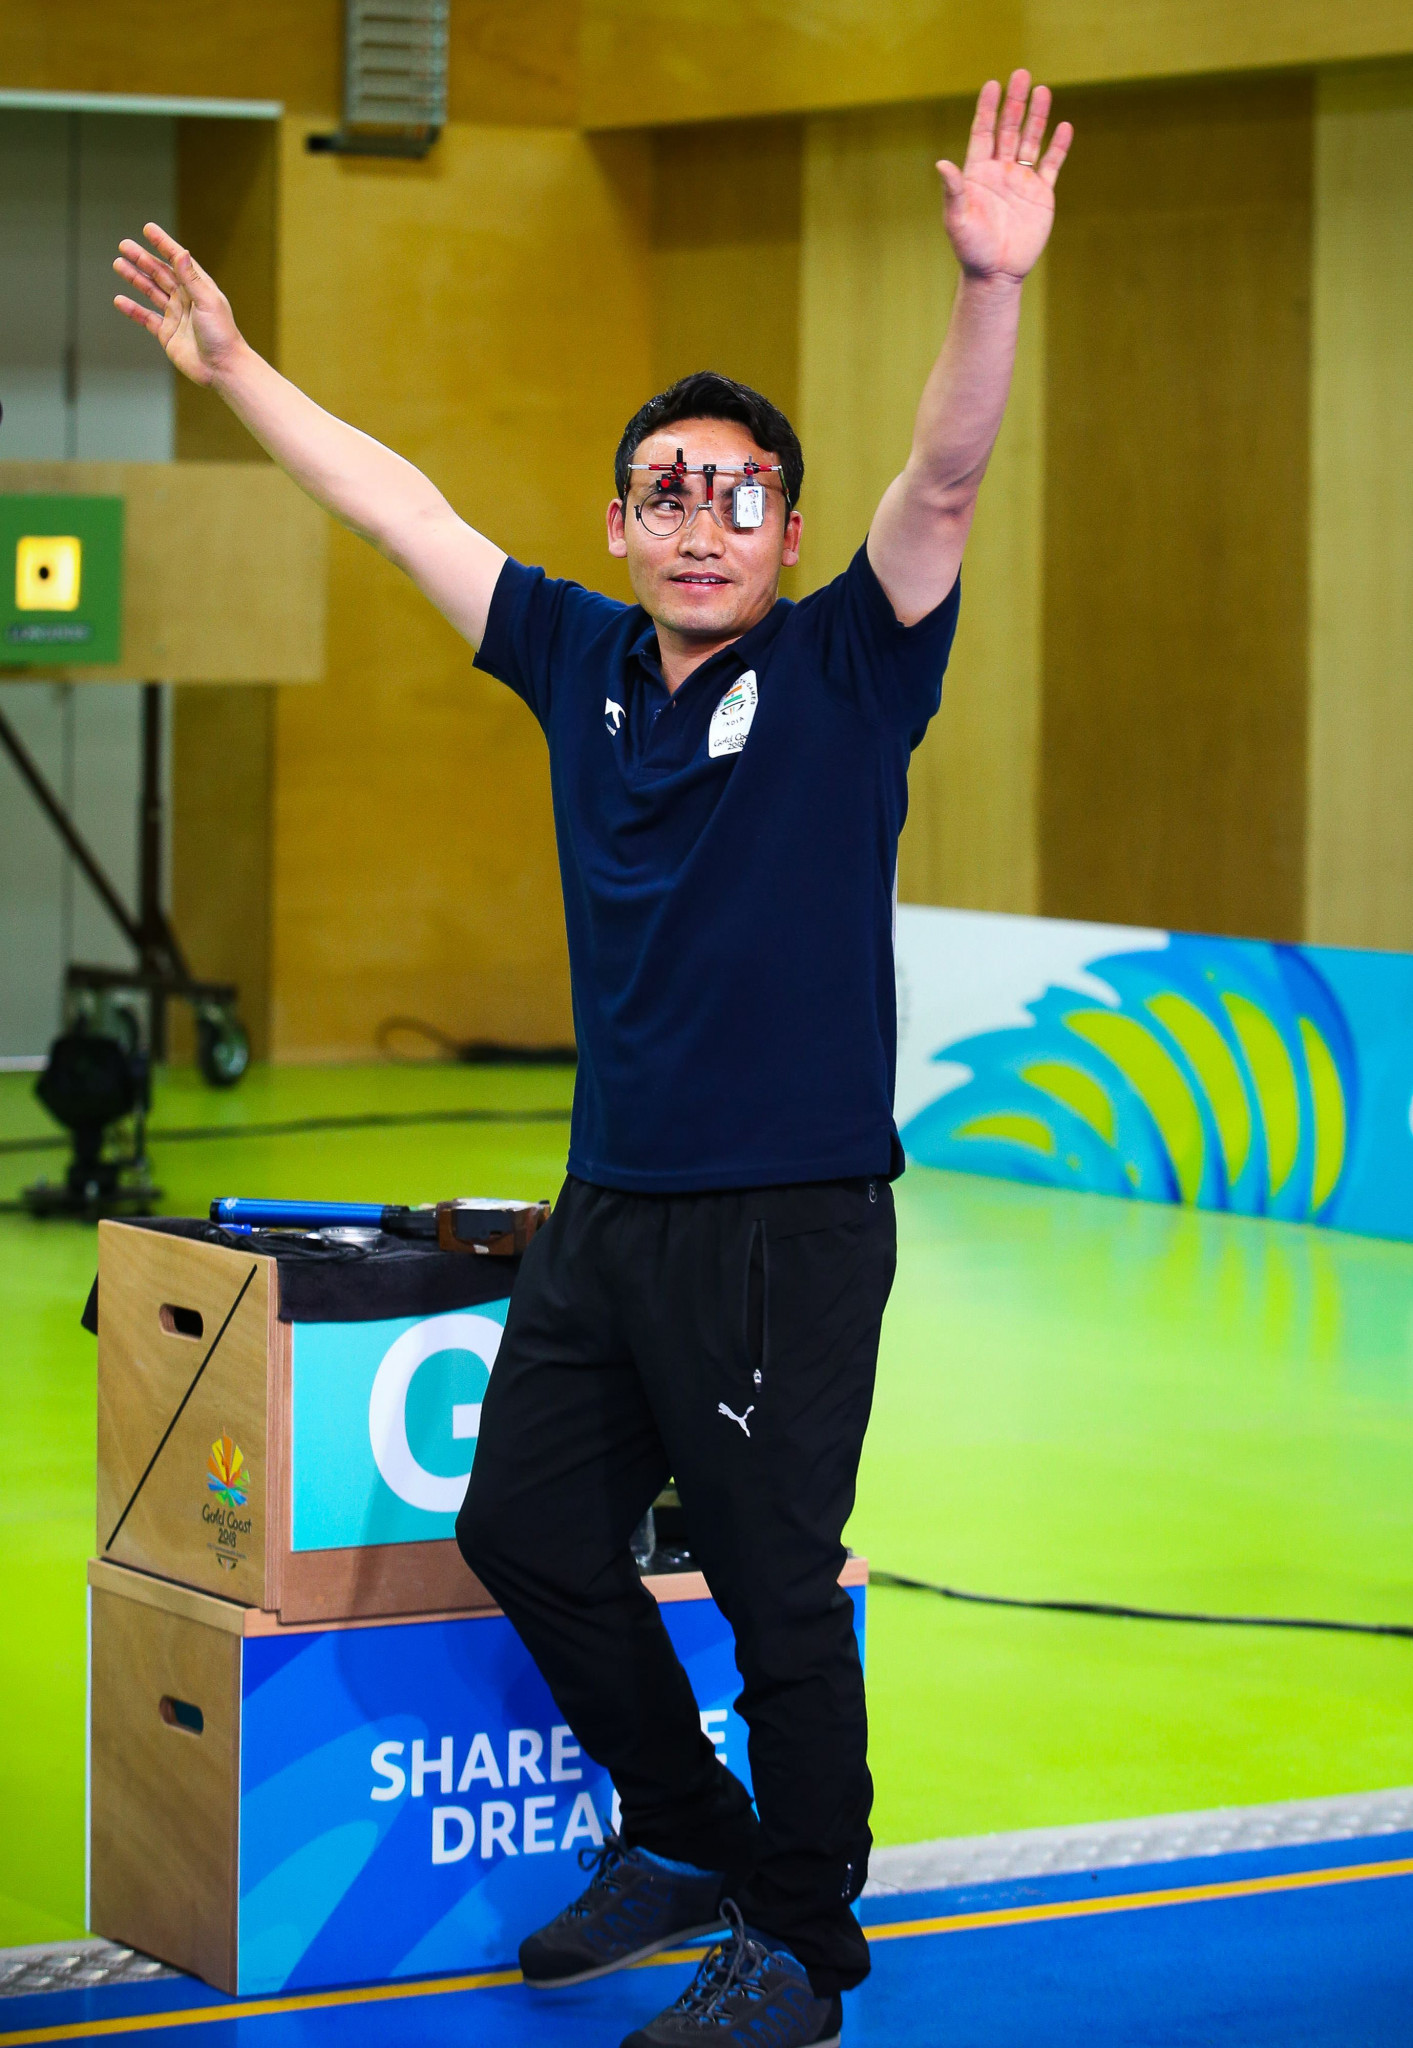 Jitu Rai claimed one of India's seven gold medals as they topped the sport's standings at the Gold Coast 2018 Commonwealth Games ©Getty Images